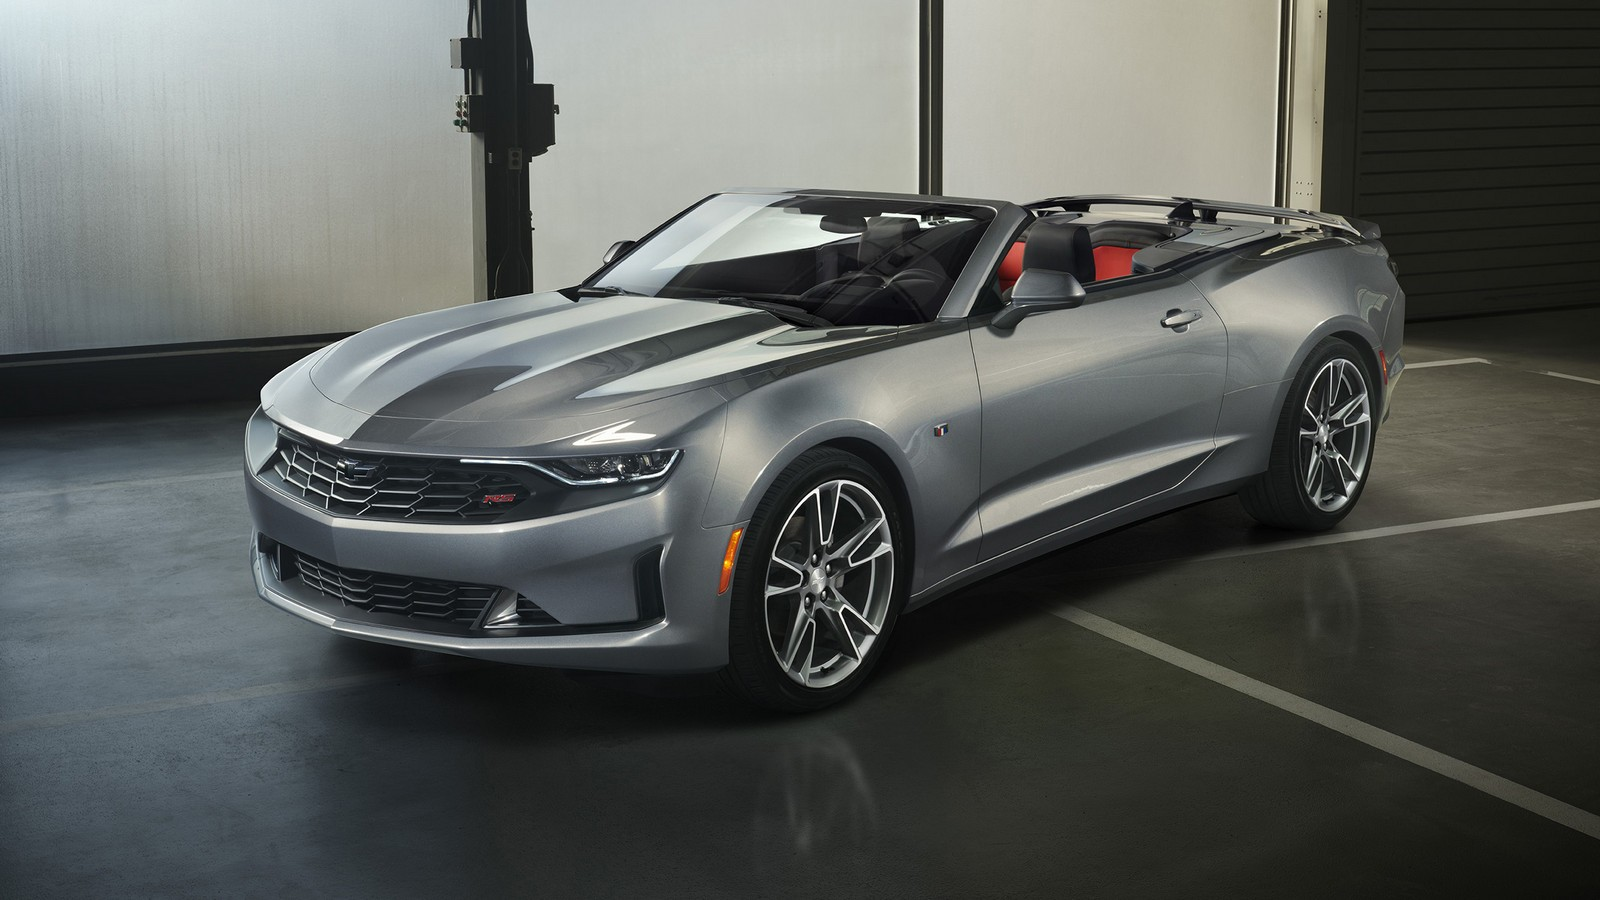 2019 Camaro RS' new front-end styling, including the fascia, g